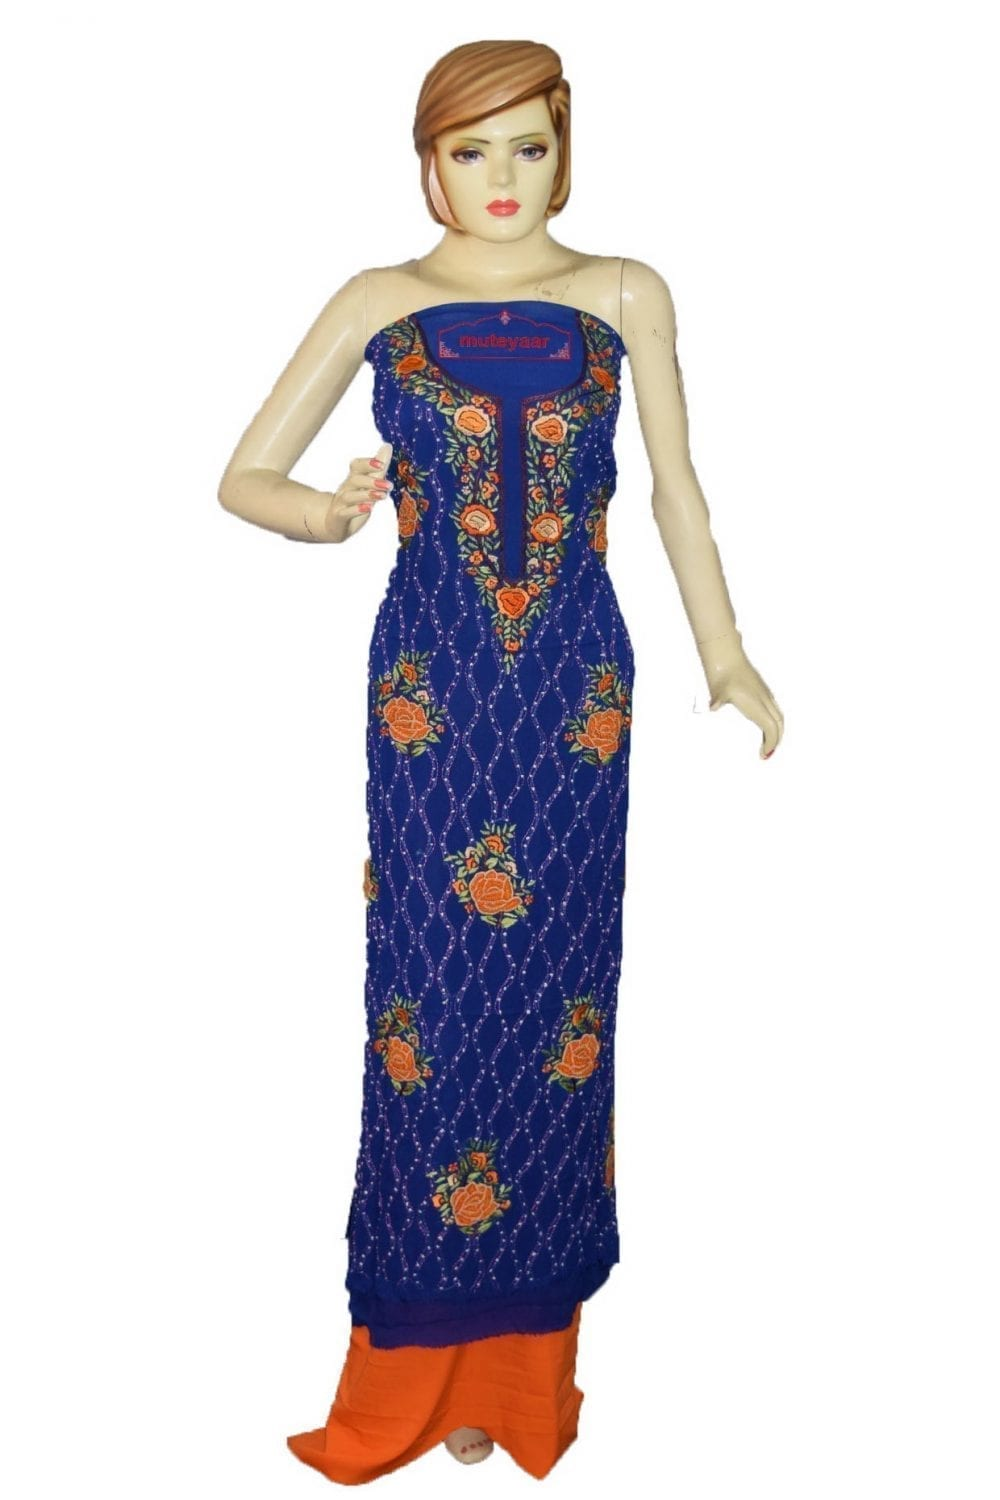 Vibrant Blue GEORGETTE LONG Kurti Hand Embroidered Party Wear Unstitched Fabric K0397 1